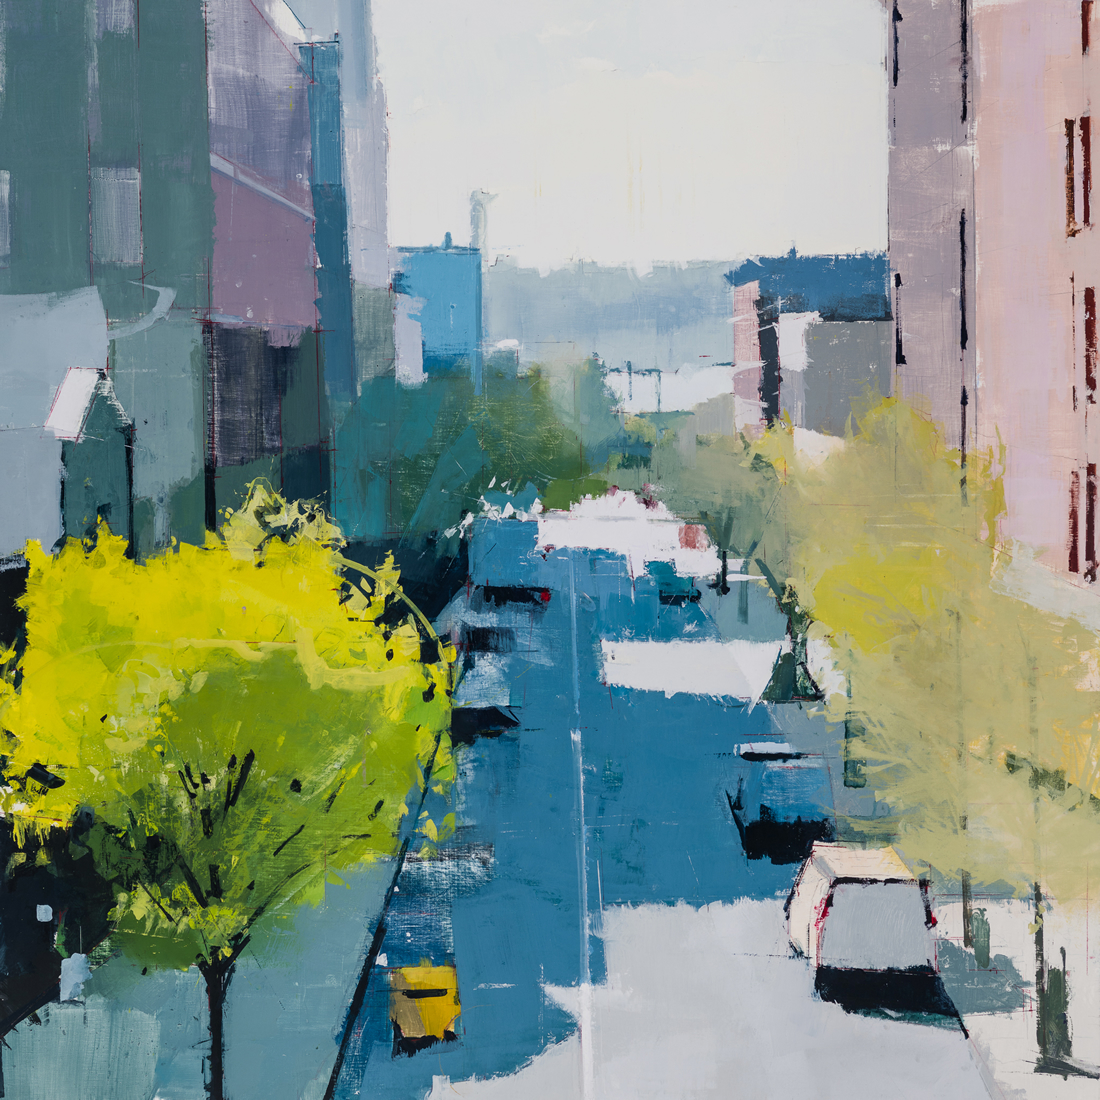 painting, Highline Looking West, painting by Lisa Breslow